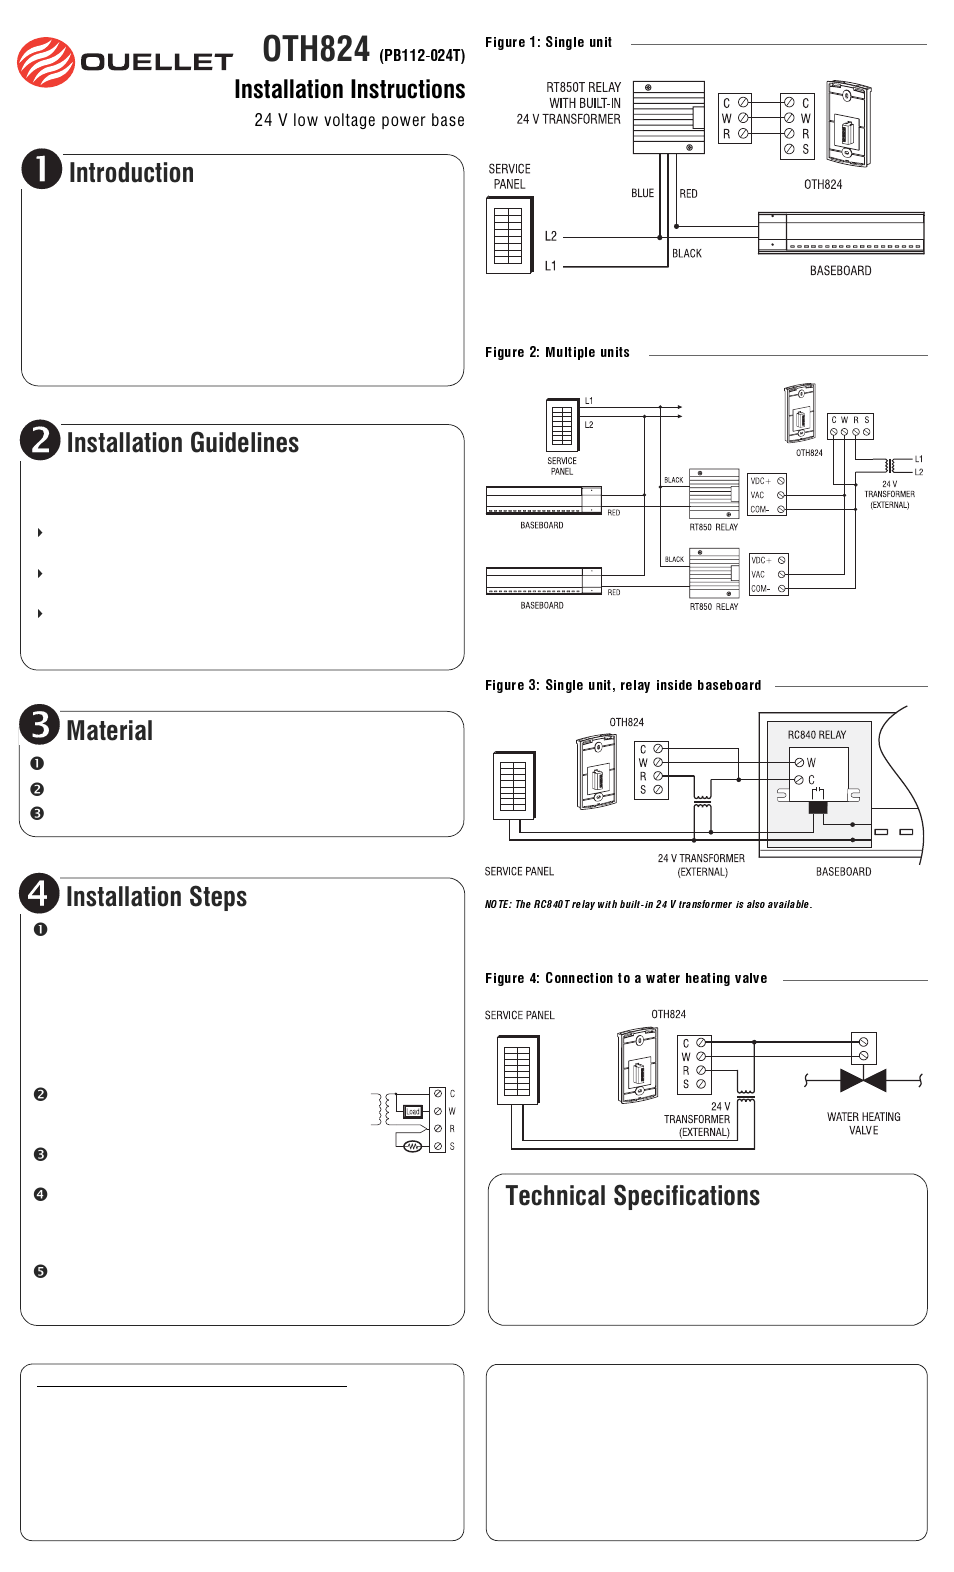 Ouellet OTH824 User Manual   1 page